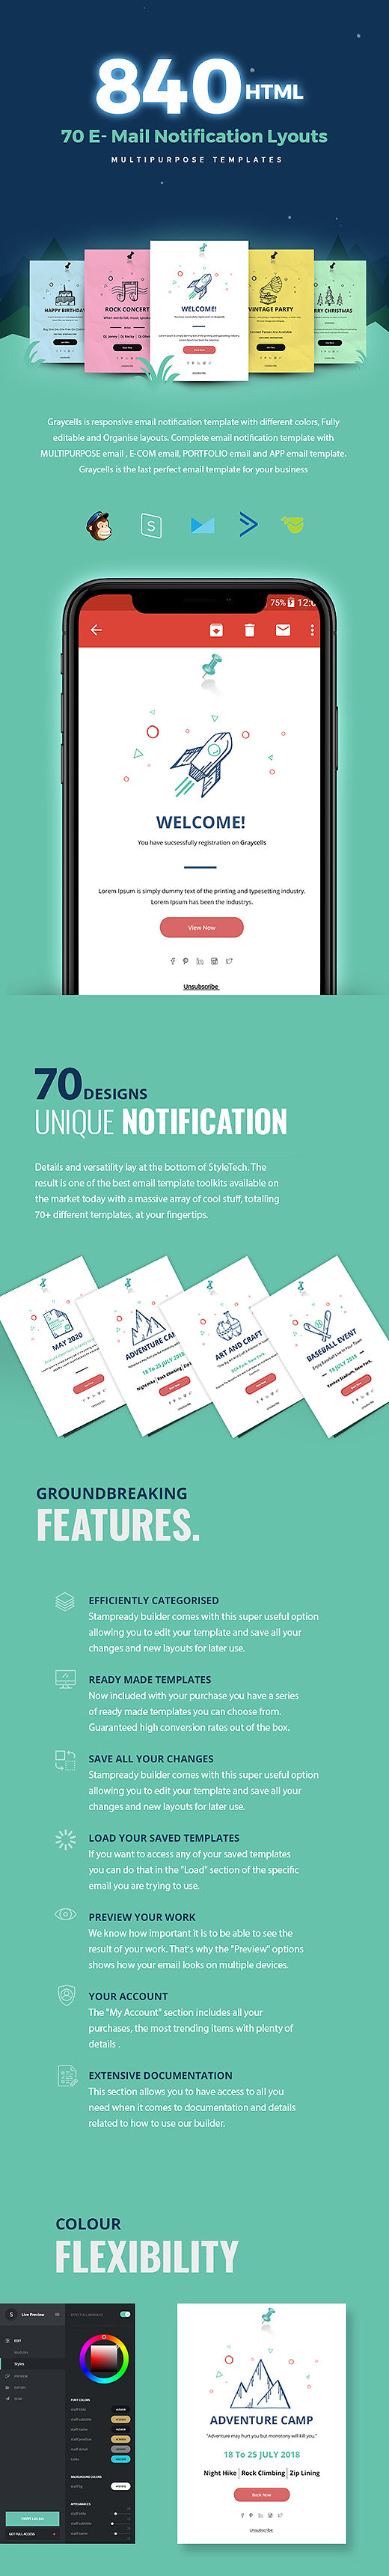 graycells-responsive-email-notification-template